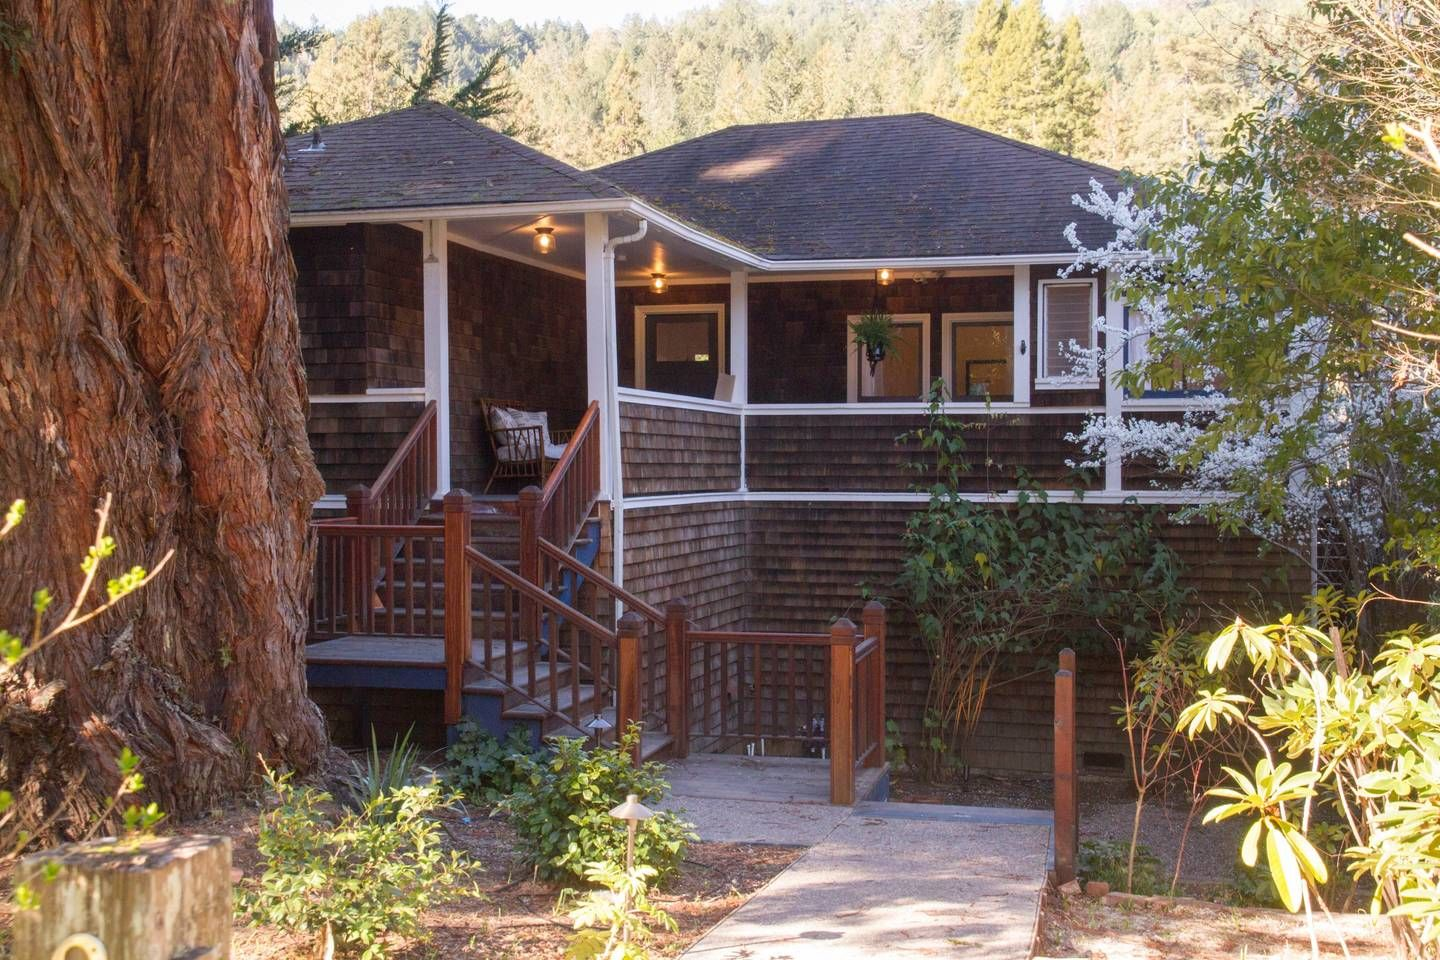 Grace Cottage On The River Cottages For Rent In Monte Rio California United States Vacation Home River Cottage House Styles